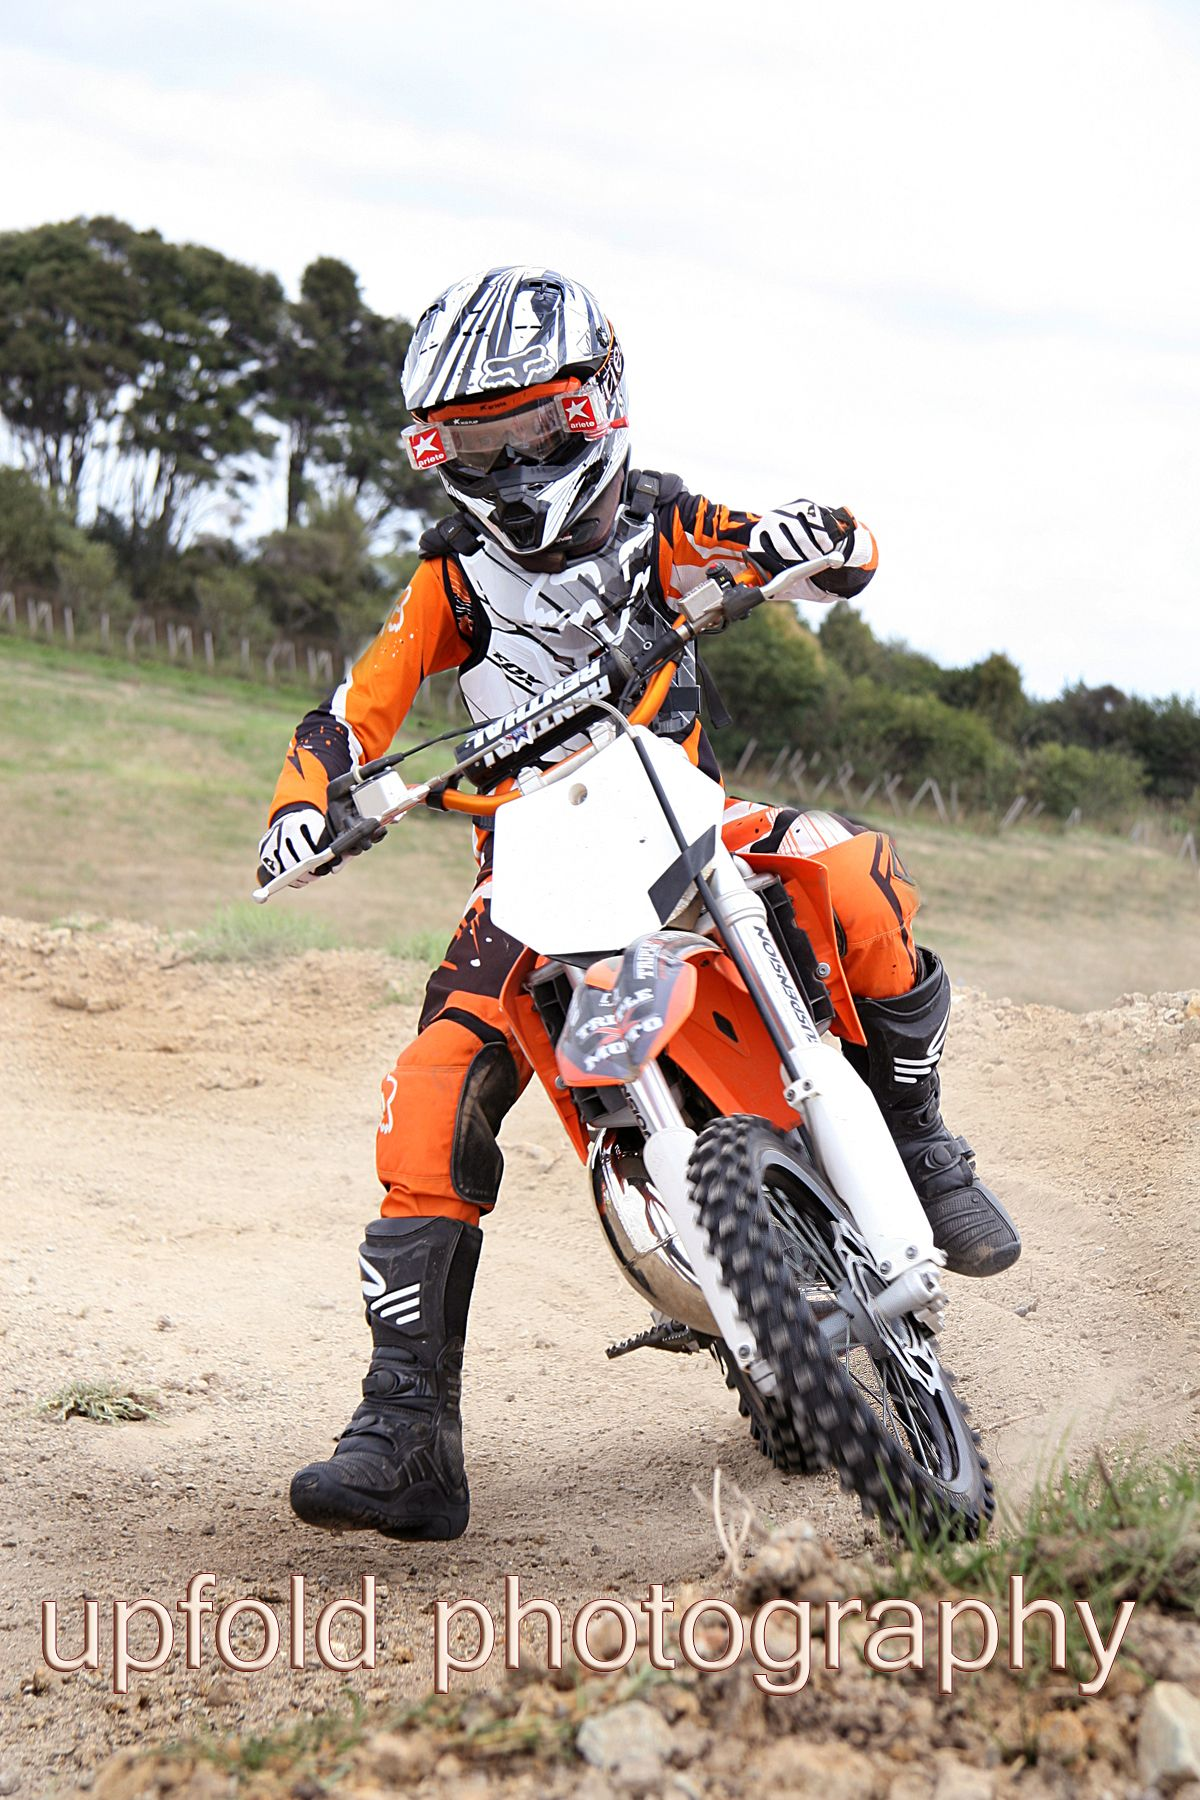 Mini Motocross In Auckland New Zealand Young Child Riding A Ktm